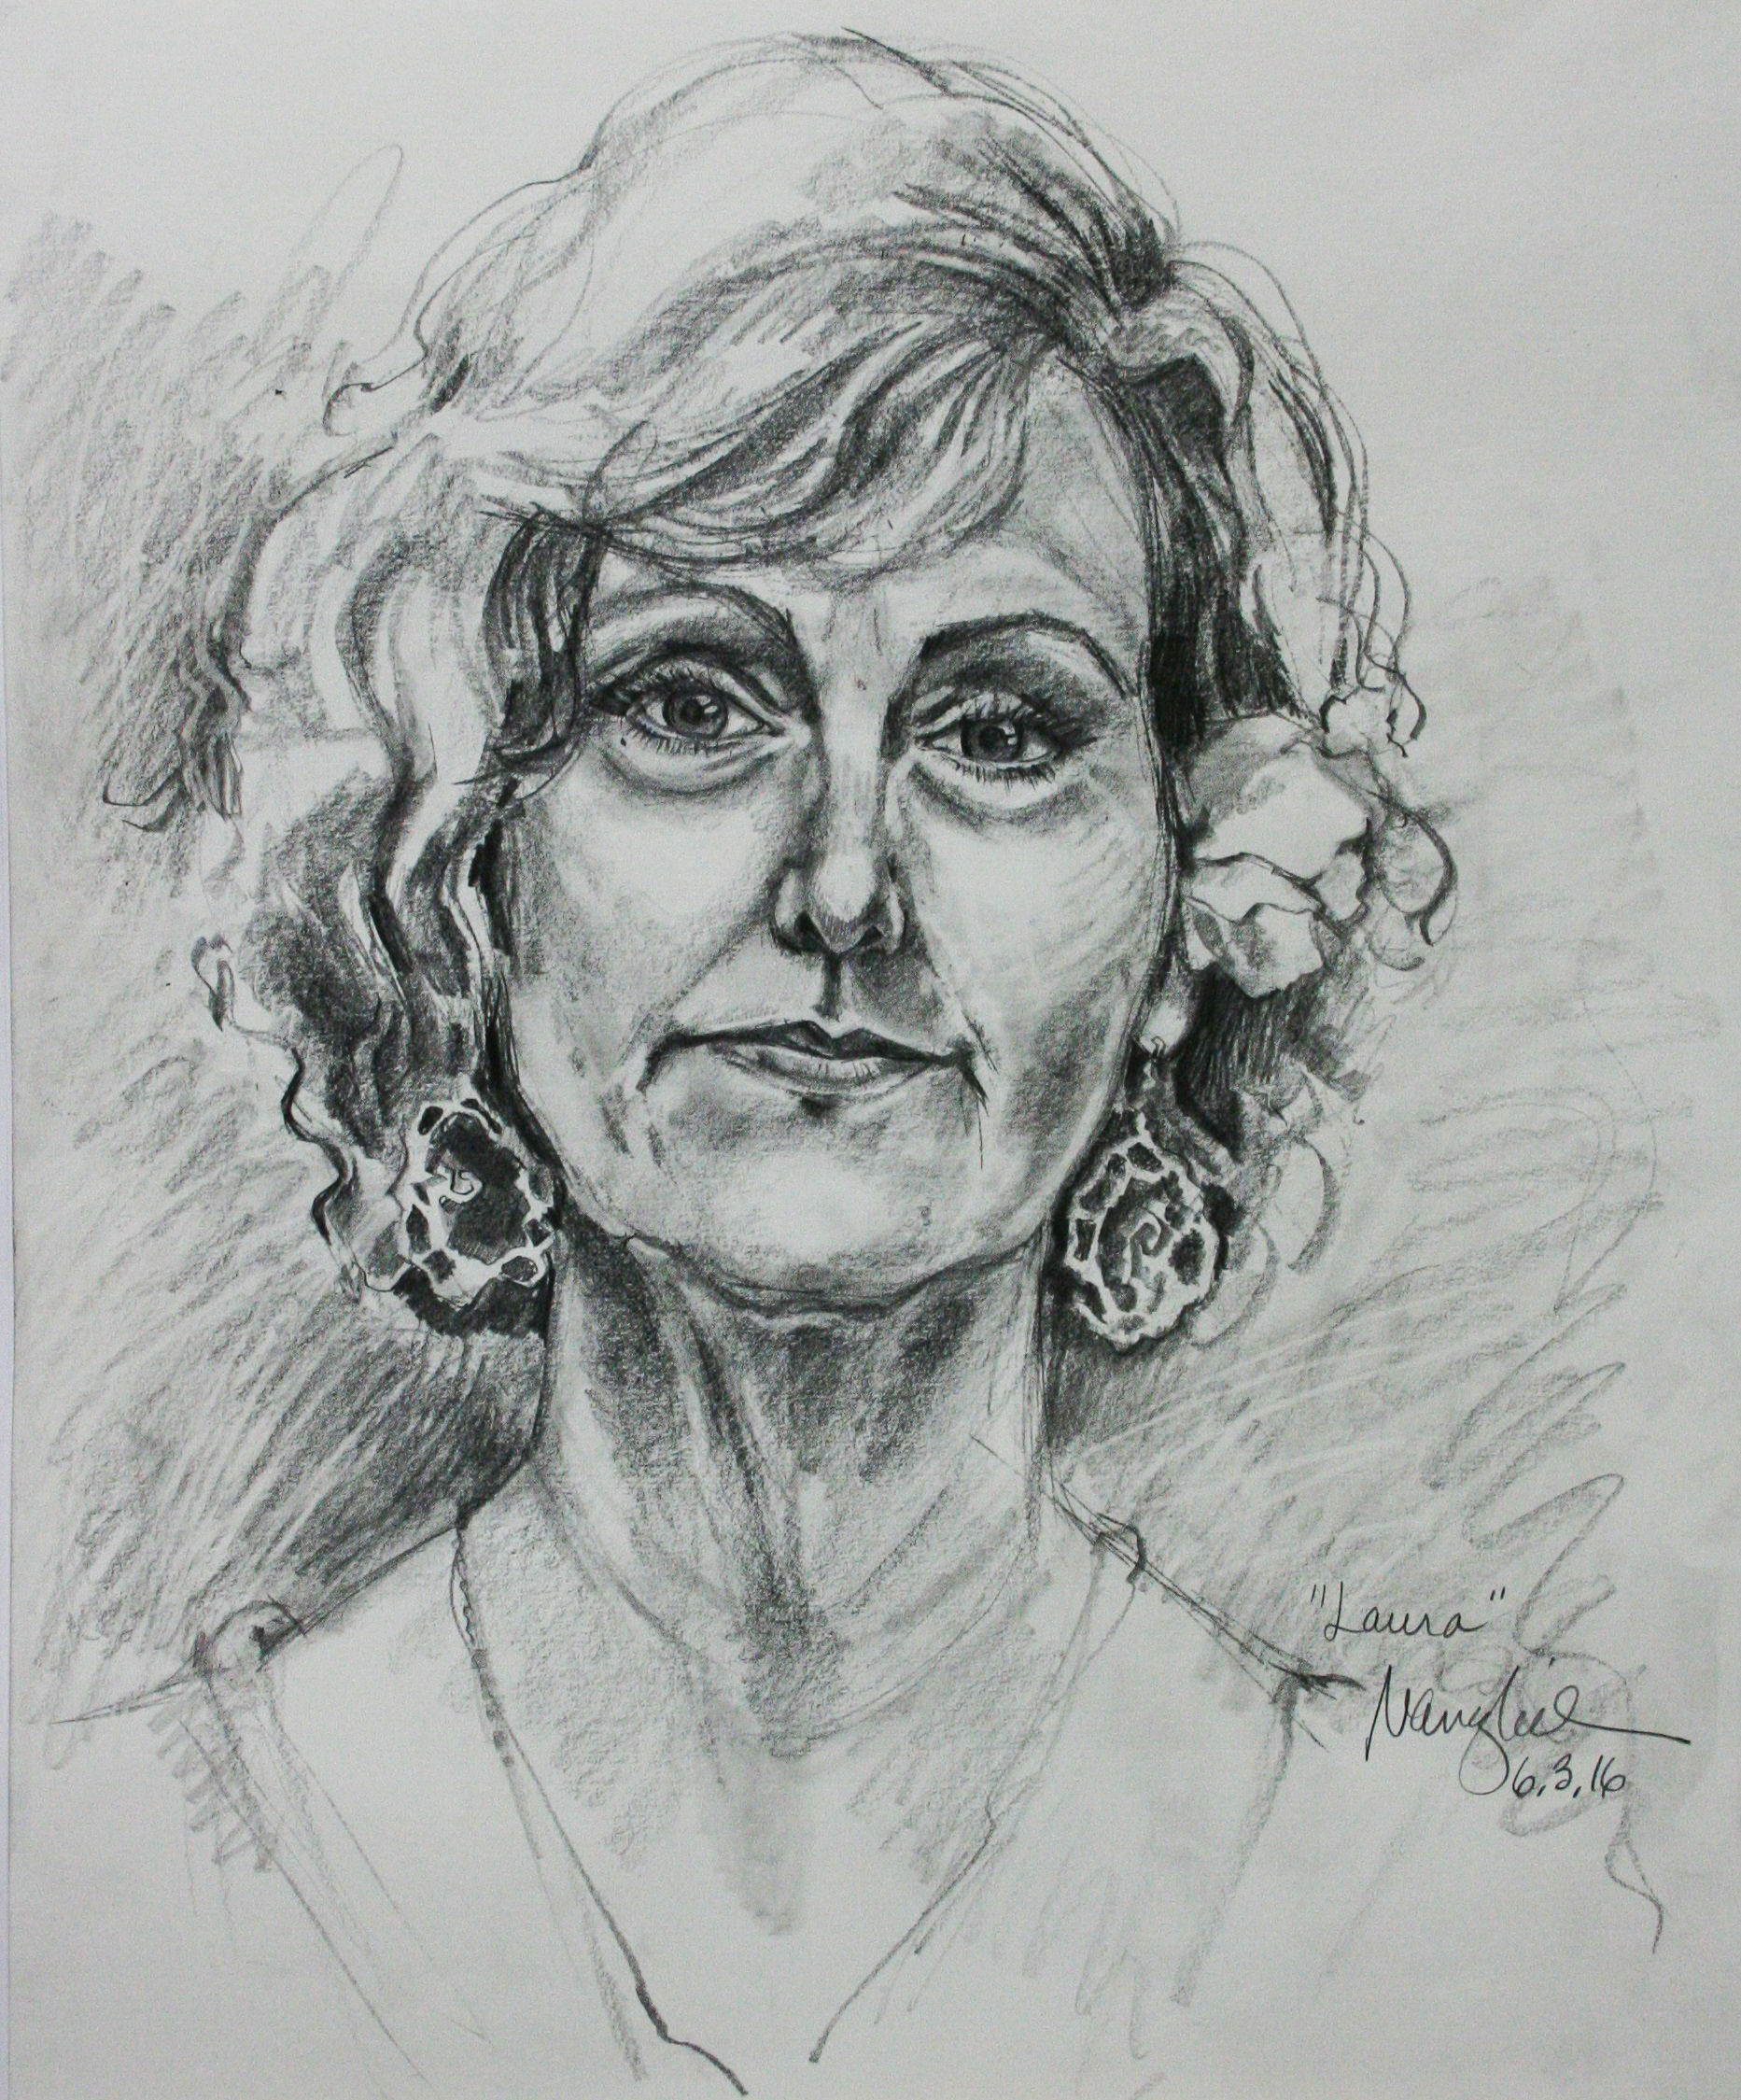 Nancy Lick did this 3-hour drawing.